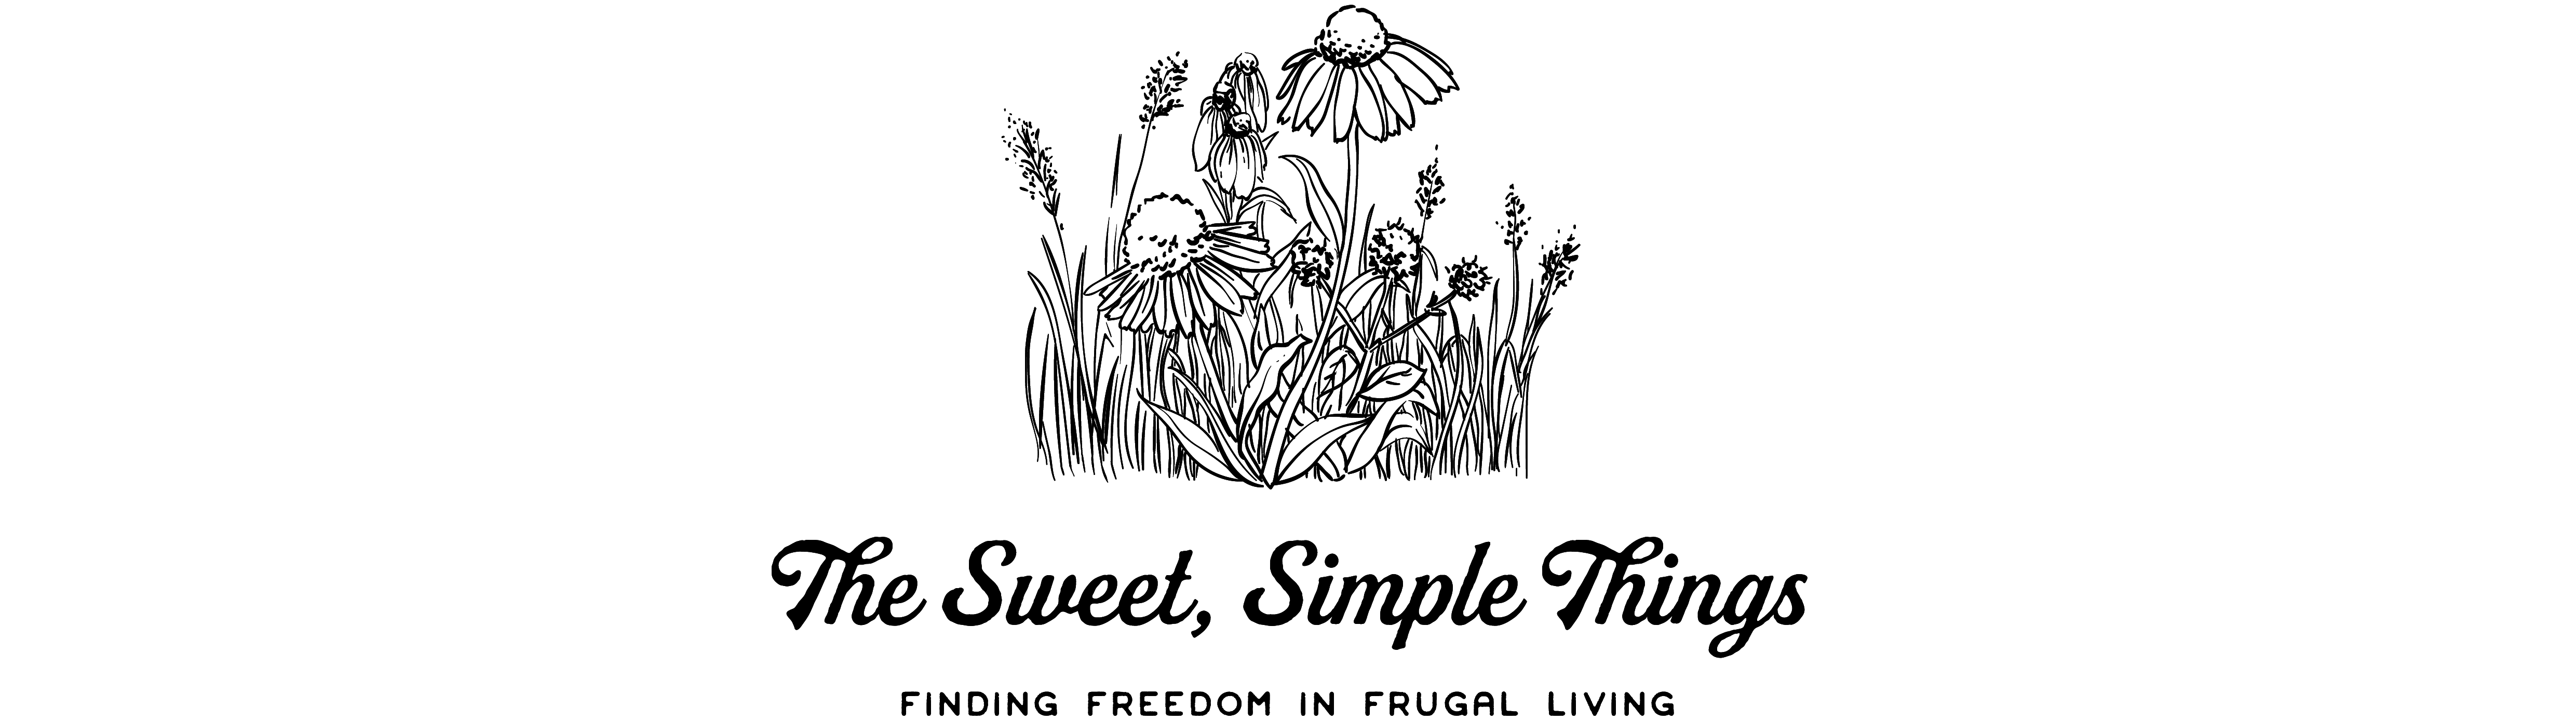 The Sweet, Simple Things